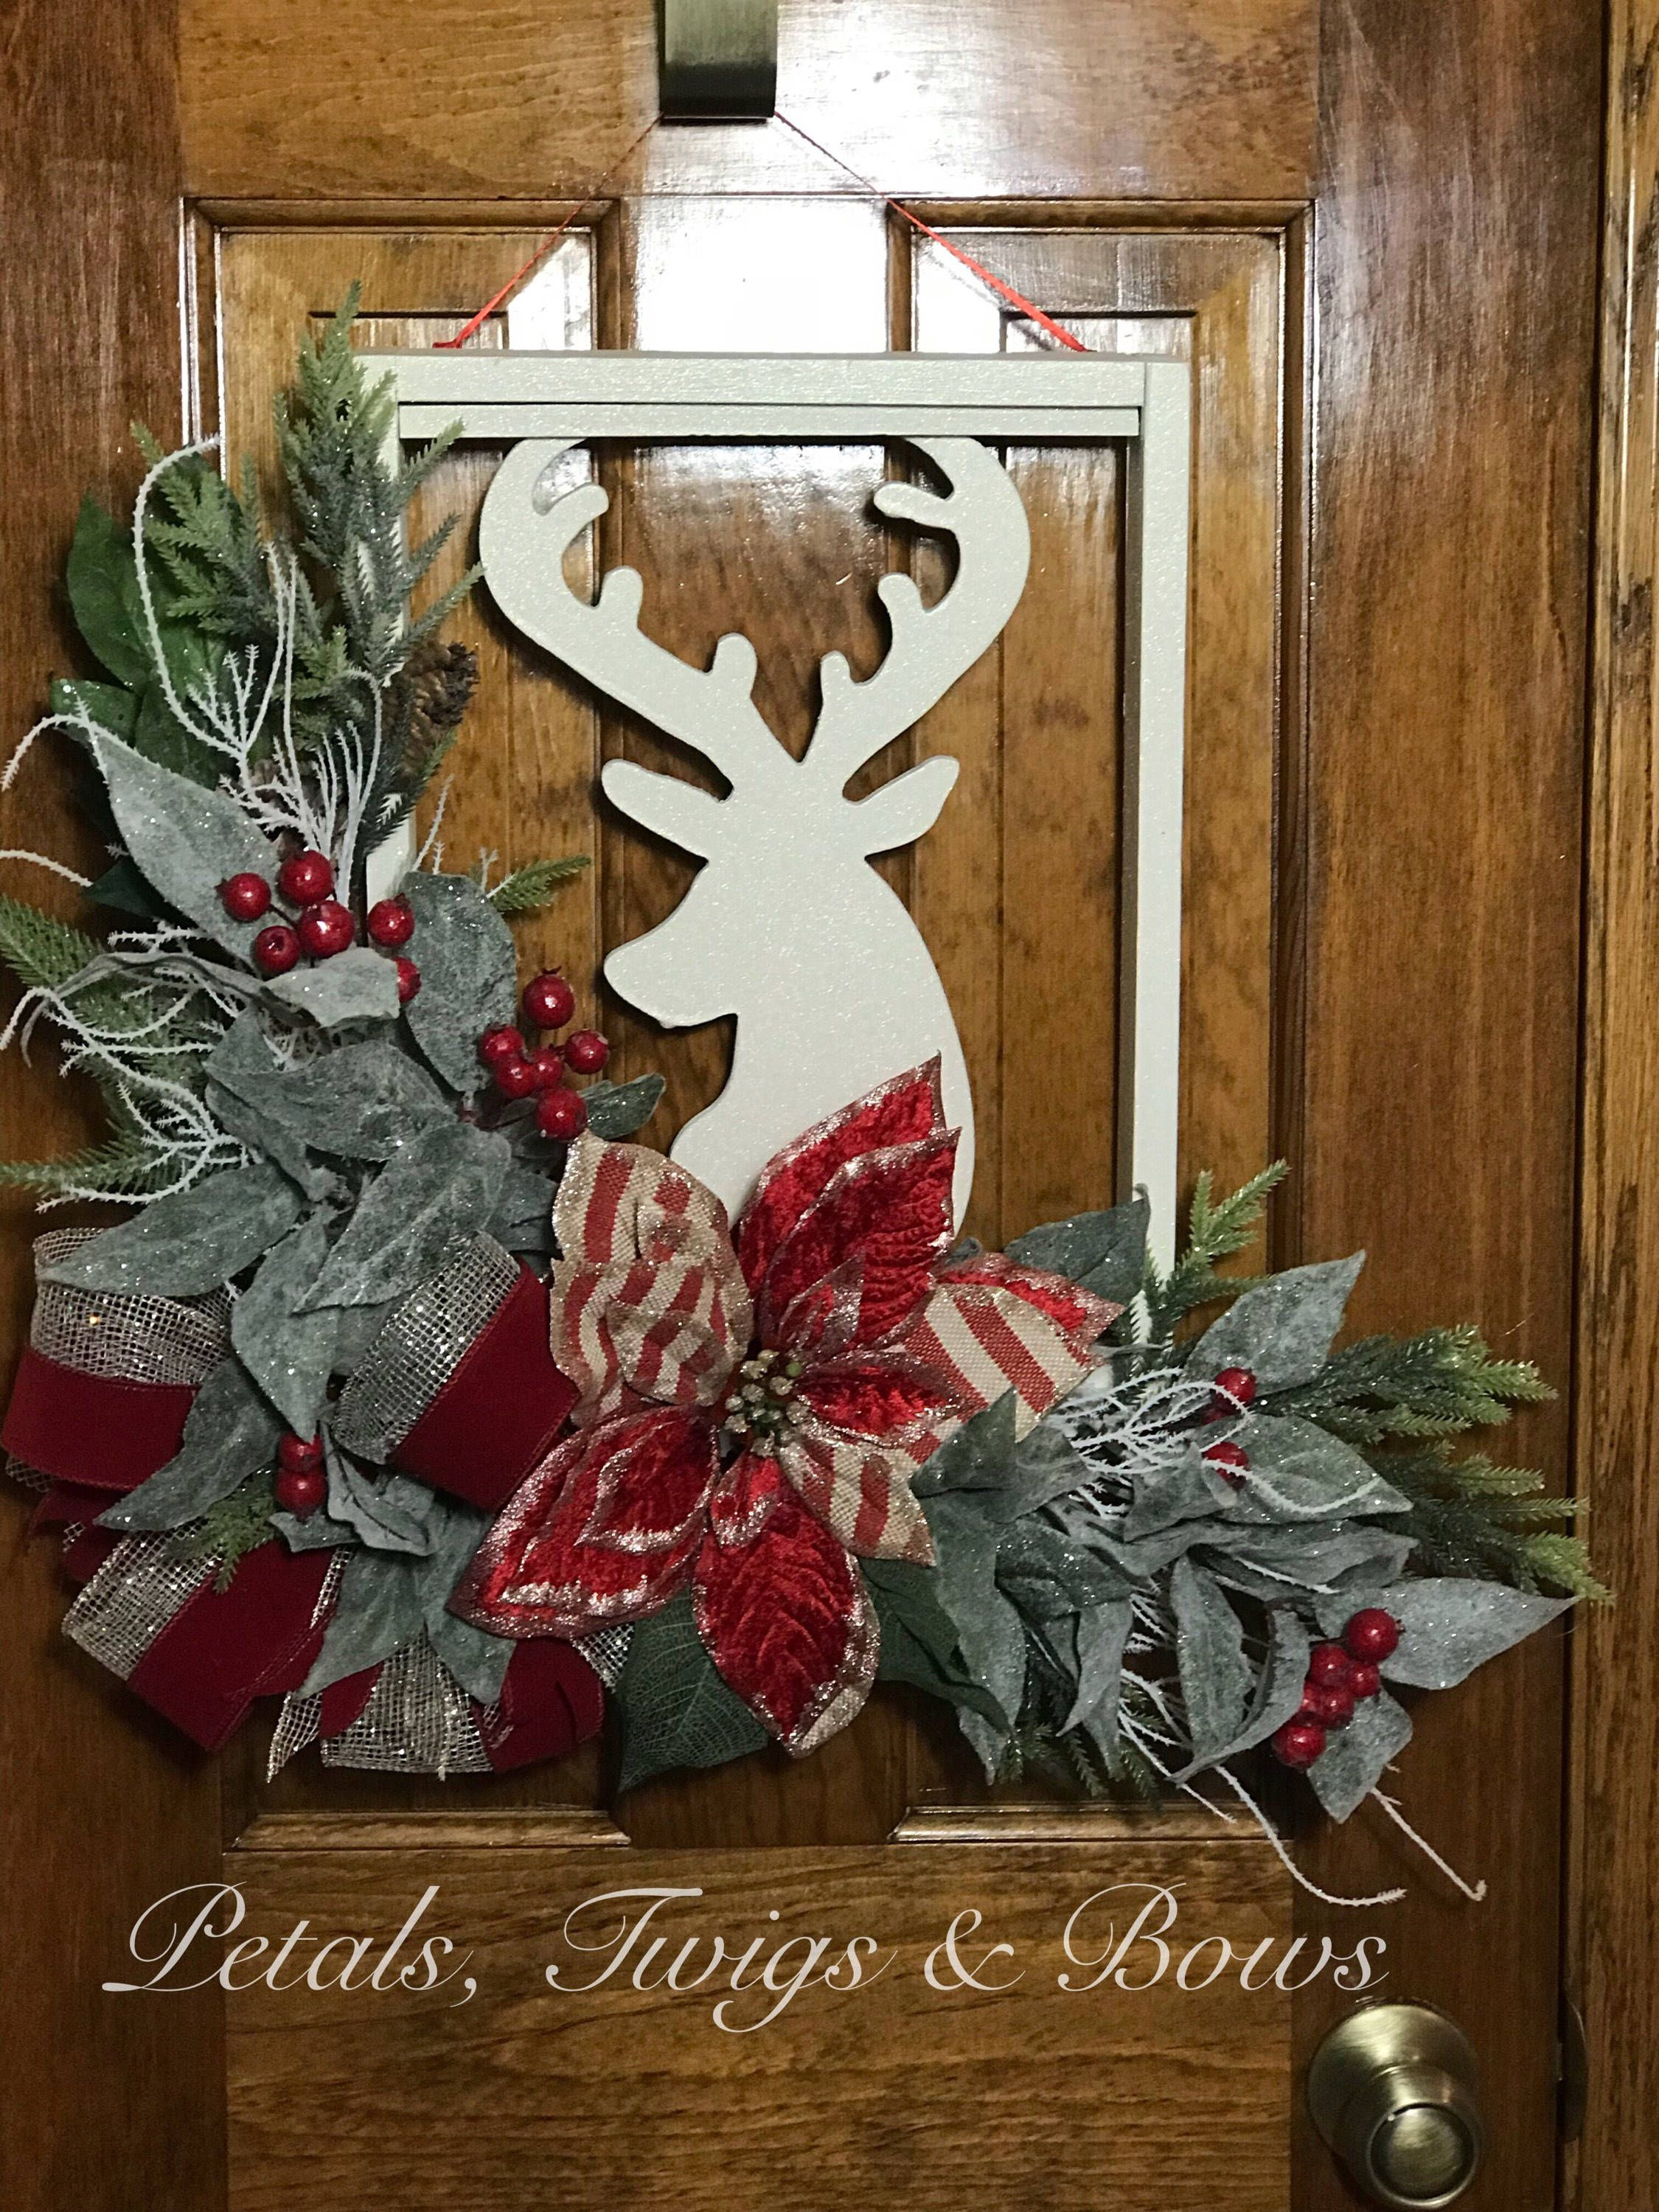 Christmas Decor Decorated Reindeer Frame Wall Hanger Unique Holiday Floral Swag On Picture Frame For Wall Or Front Door Xmas Decoration Christmas Door Hanger Christmas Door Decorations Christmas Picture Frames